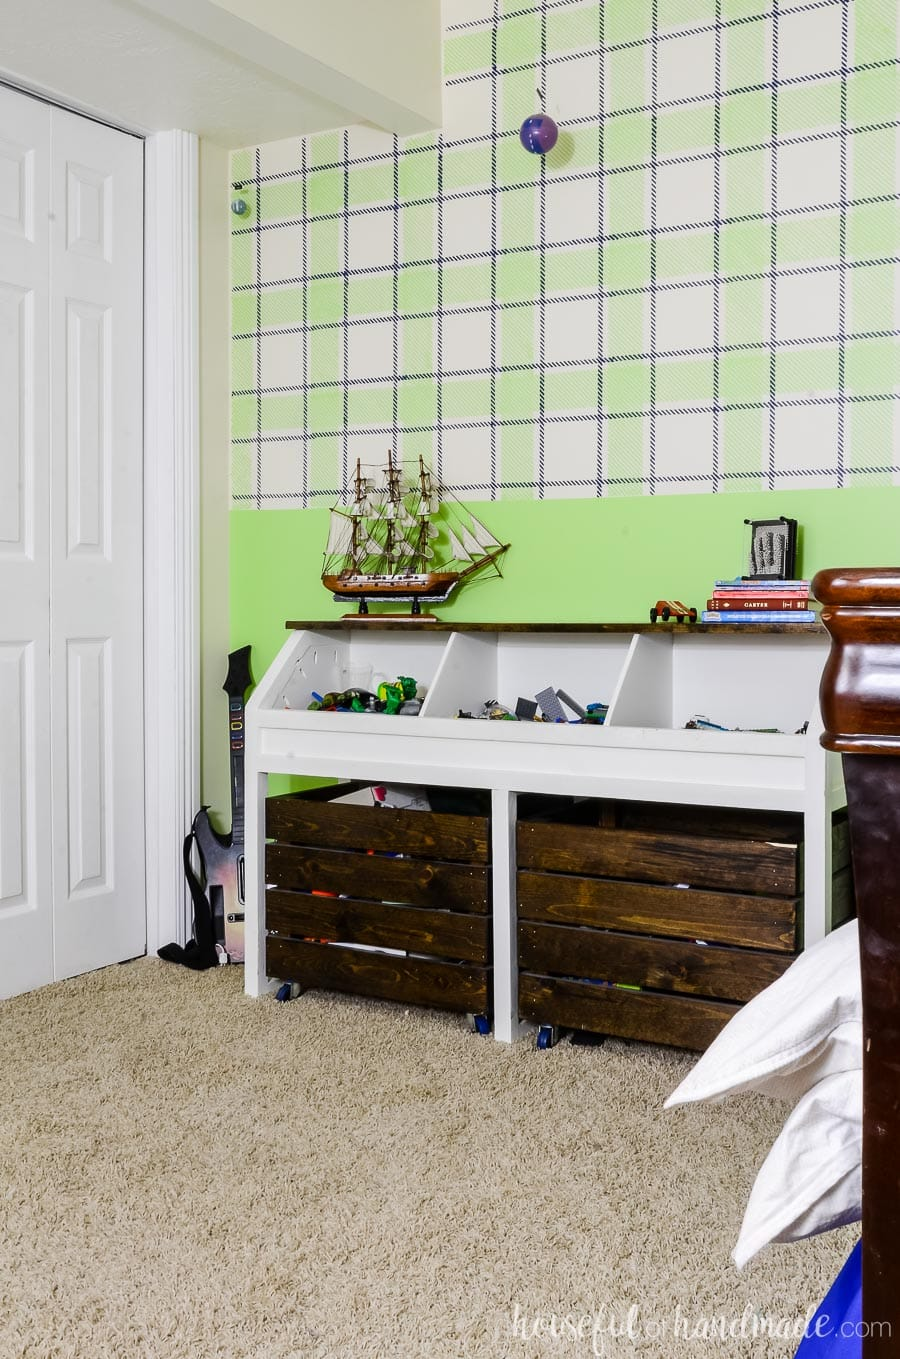 Blue & Green Boys Bedroom Ideas - Houseful of Handmade